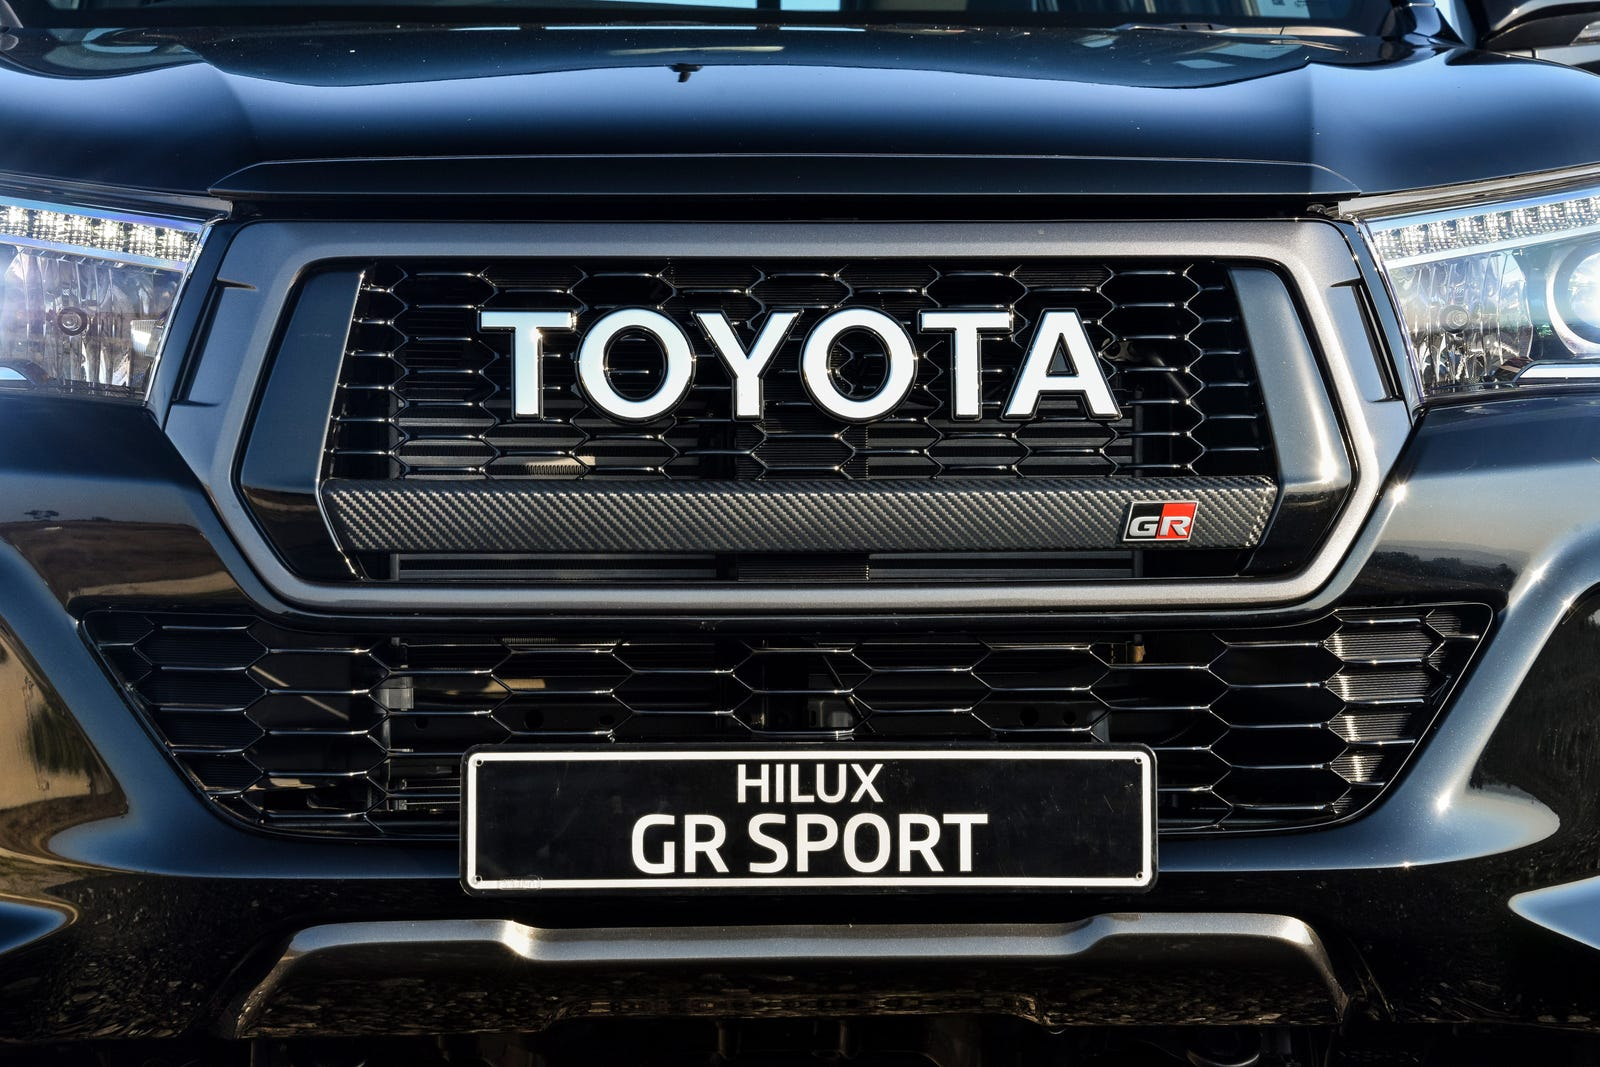 Illustration for article titled The Giant Emblem Grille on the Toyota Hilux GR Sport Is Just the Best